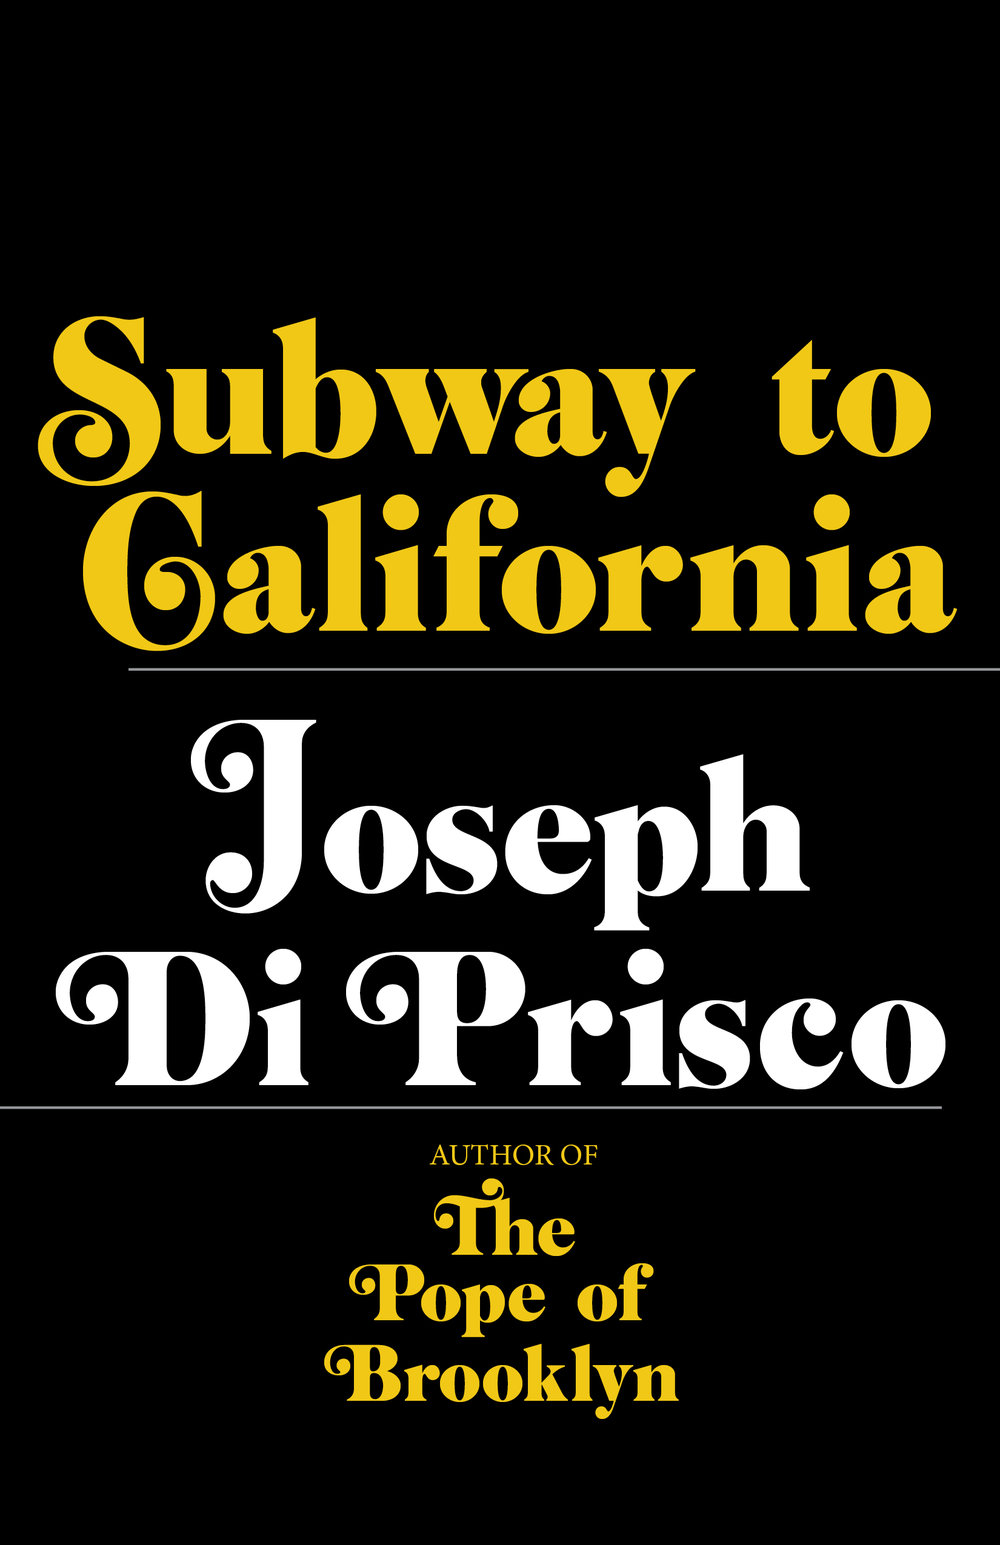 By turns hilarious and heartbreaking,Subway to Californiarecounts Joe's battles with his personal demons, bargains struck with angels, and truces with his family in this richly colorful tale that reads like great fiction.